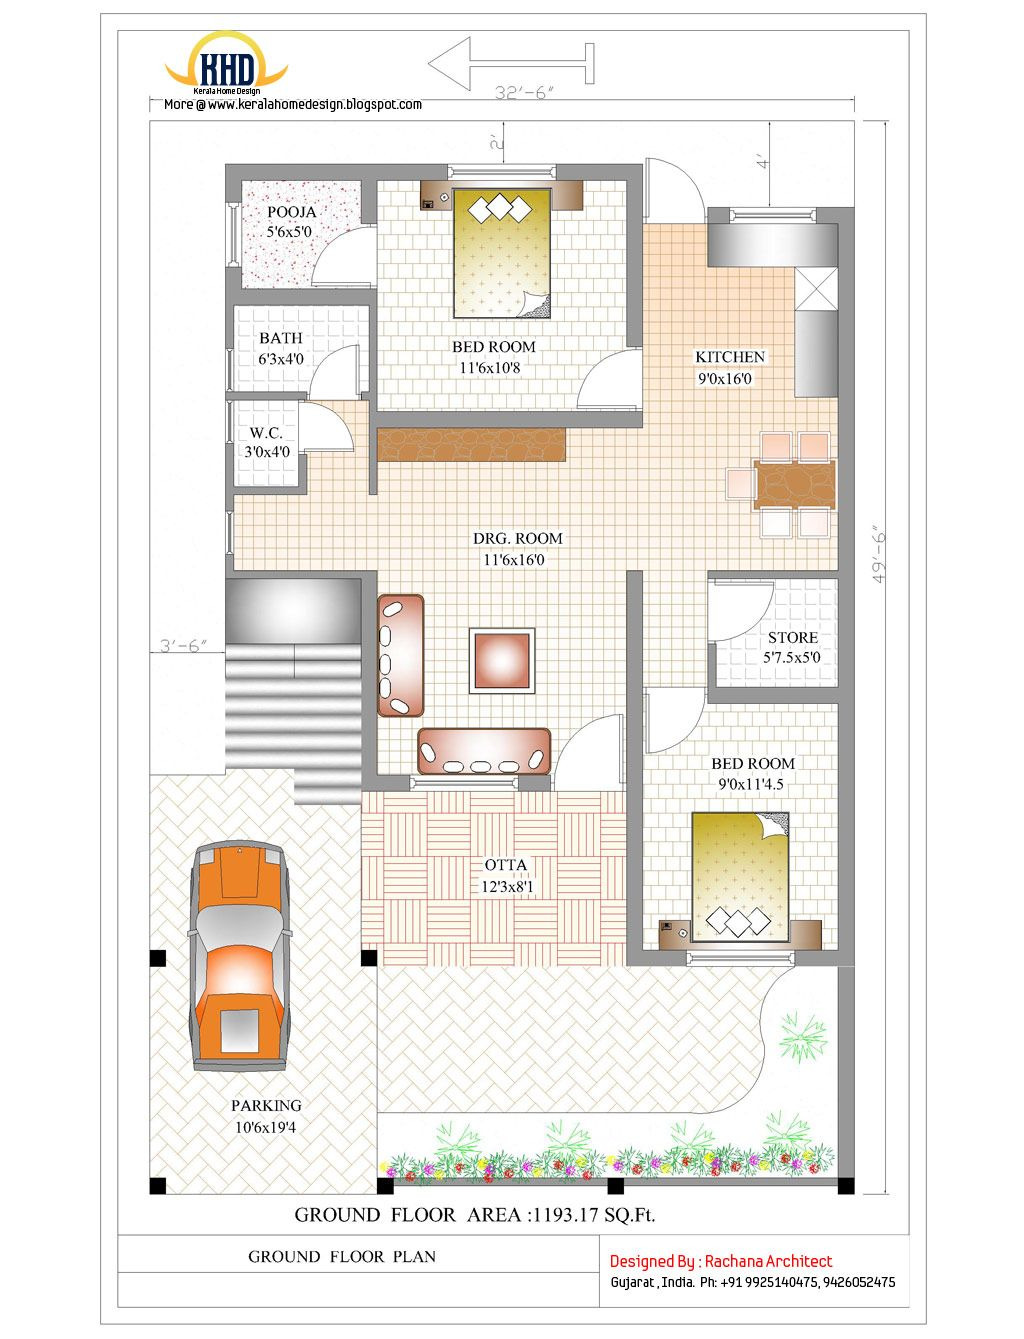 House Designs and Floor Plans In India Fresh for More Information About This House Contact Home Design